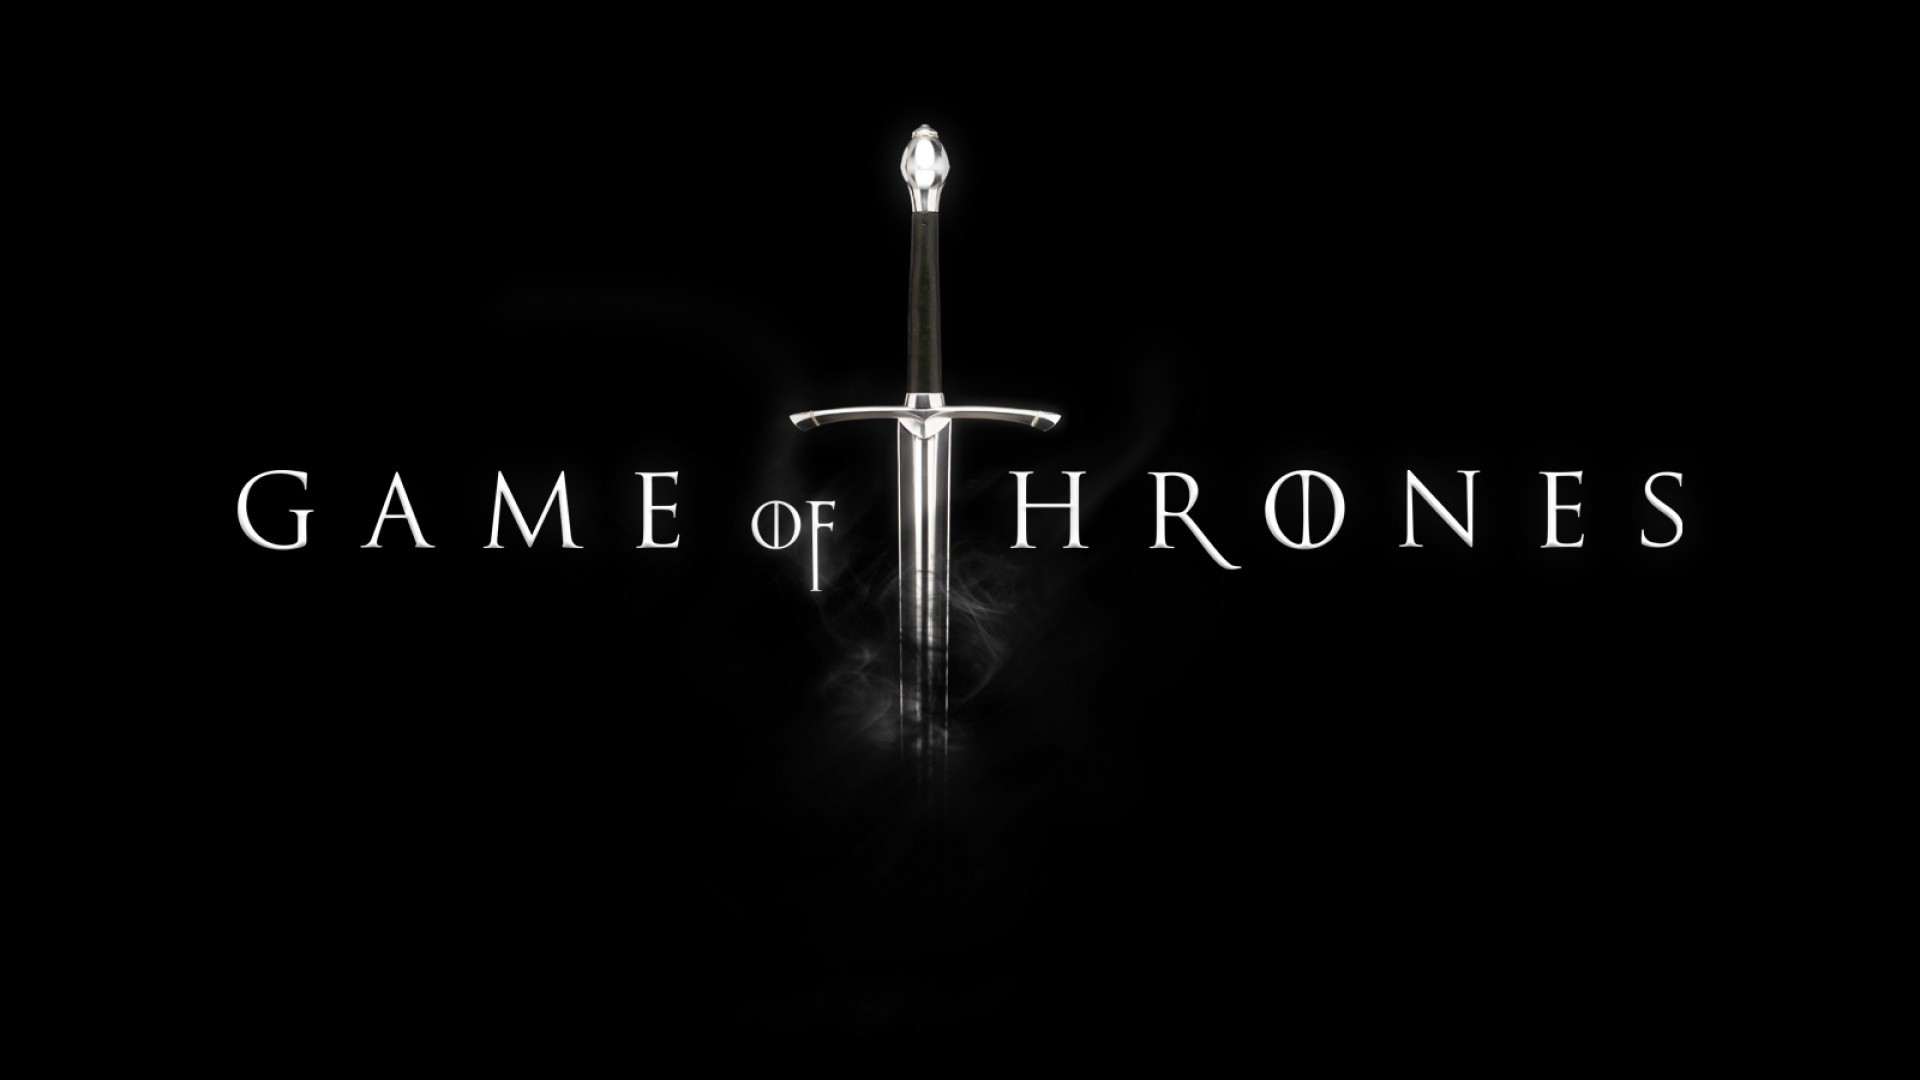 Game-of-Thrones-%C2%A1-HD-Megapost-1920x1080-wallpaper-wp340238